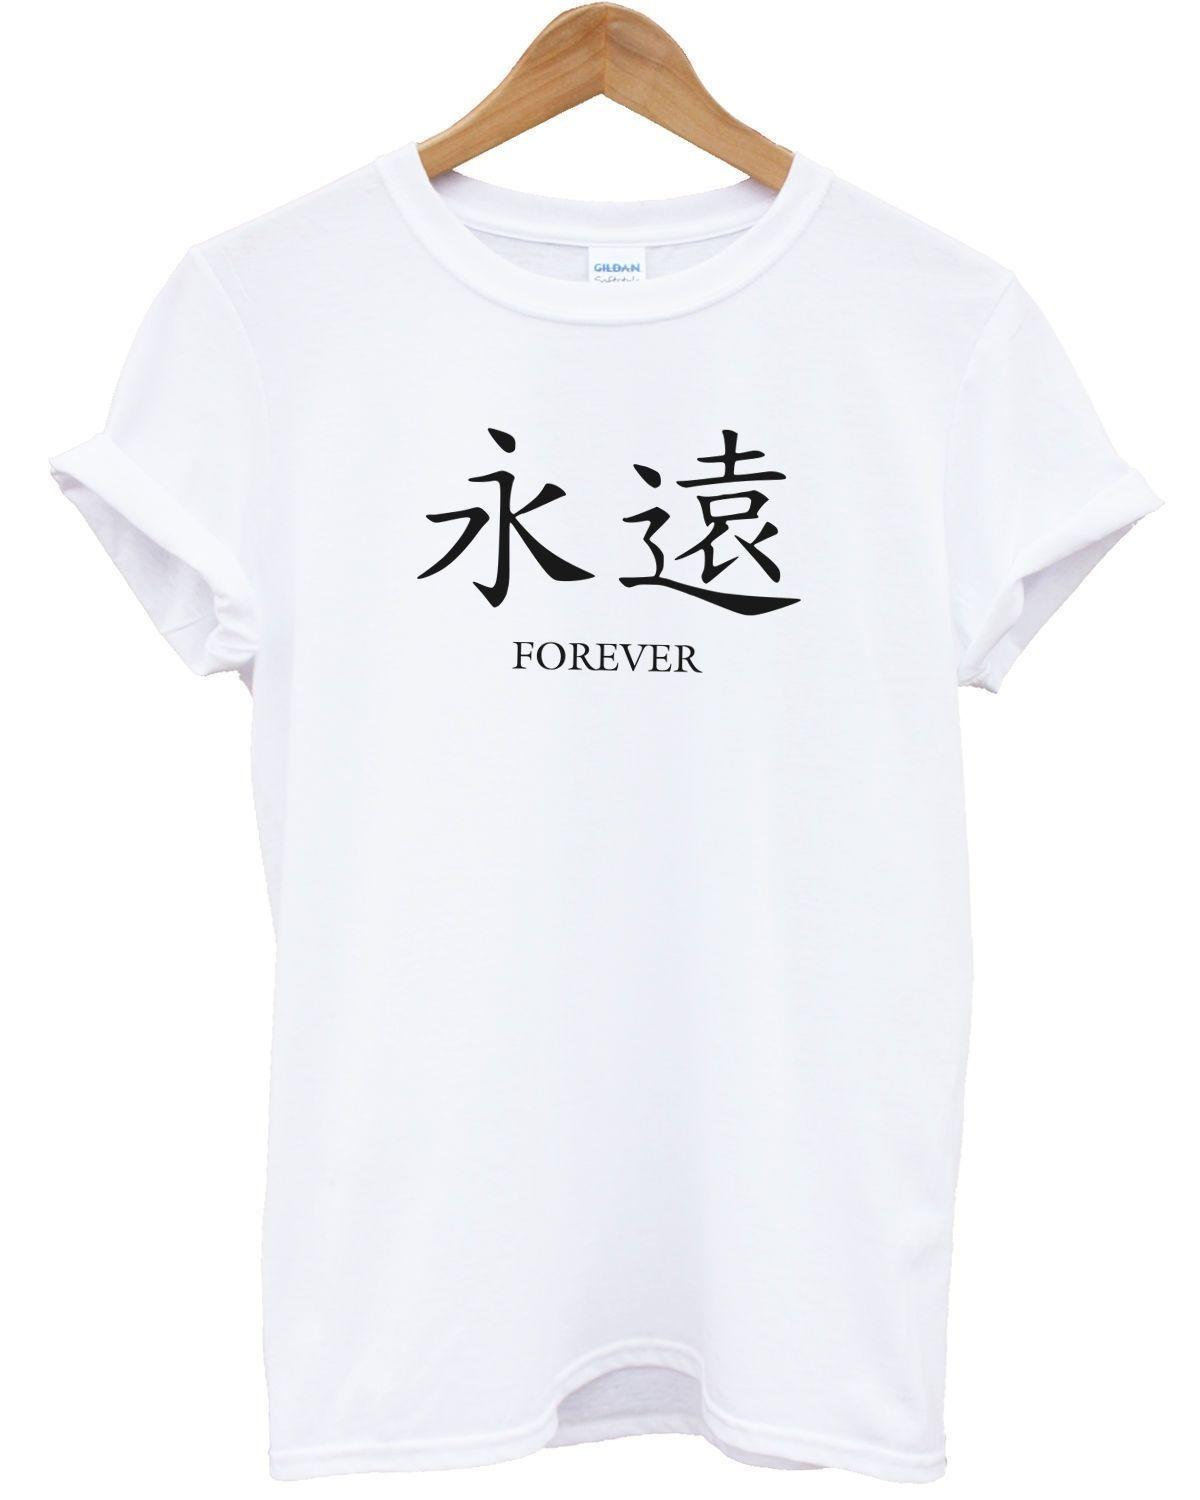 40a4f4632a3274 CHINESE FOREVER T SHIRT WRITING STYLE INSPIRATION FASHION HIPSTER WOMEN  GIRL UKFunny Unisex Casual Tee Gift Long Sleeve Shirt T Shirts Design From  ...